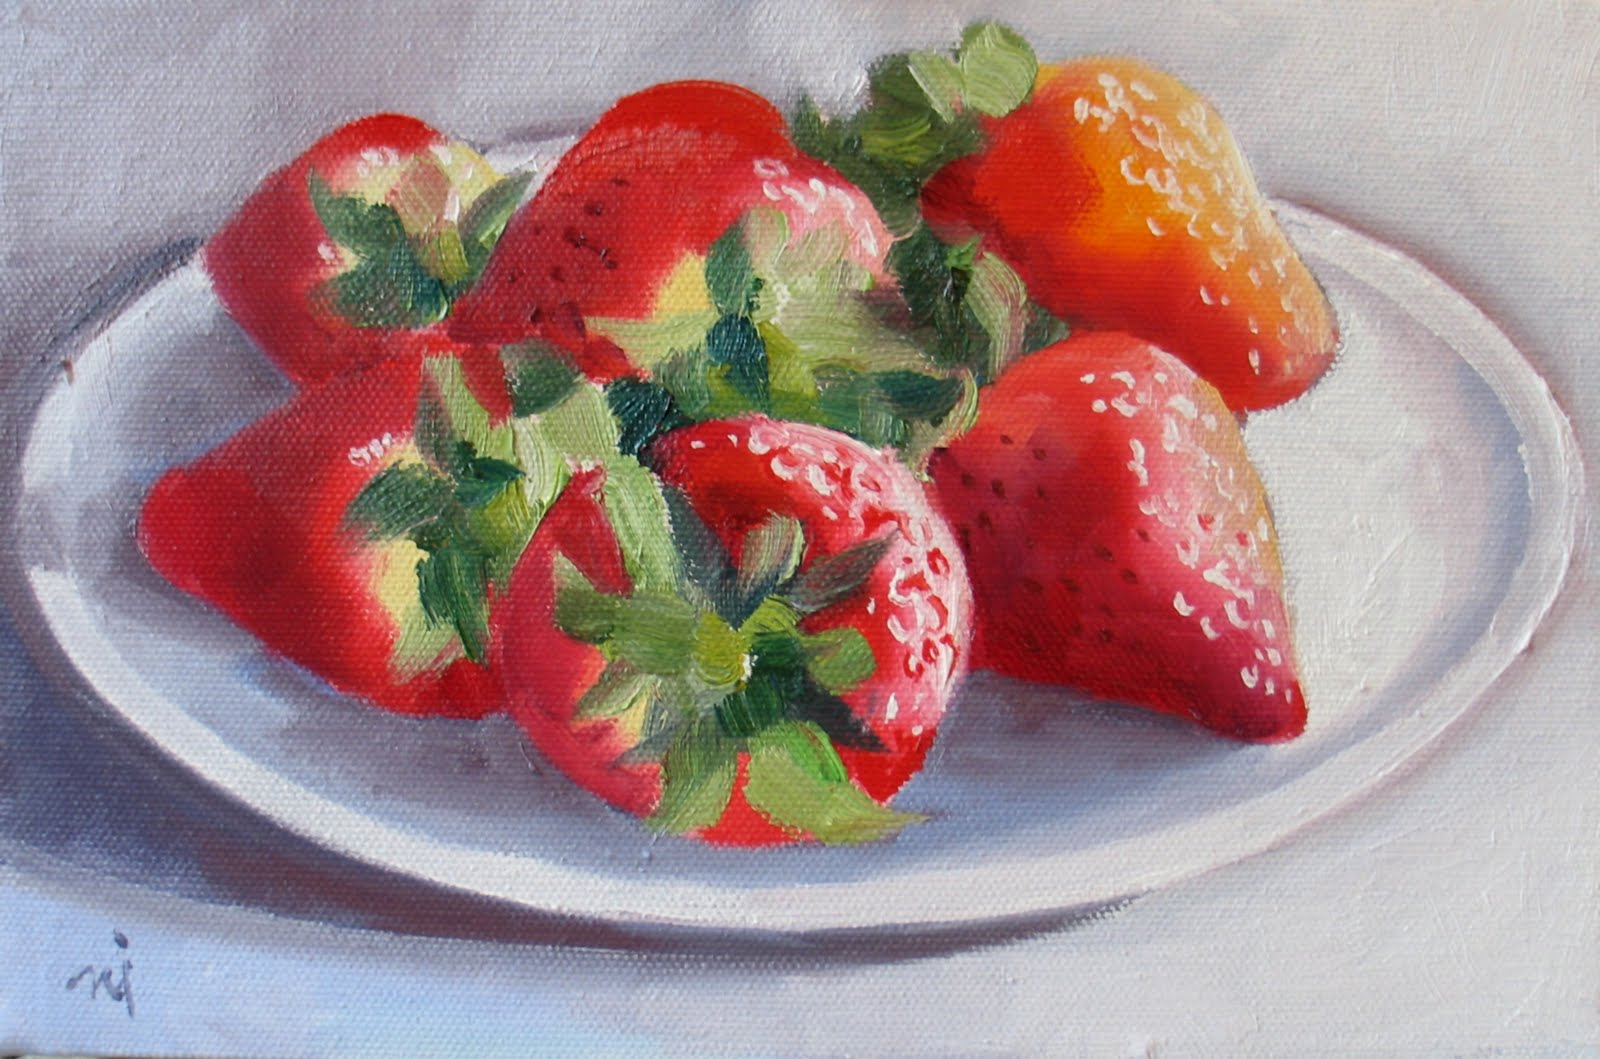 Strawberry Watercolor Painting Strawberries on plate, revised